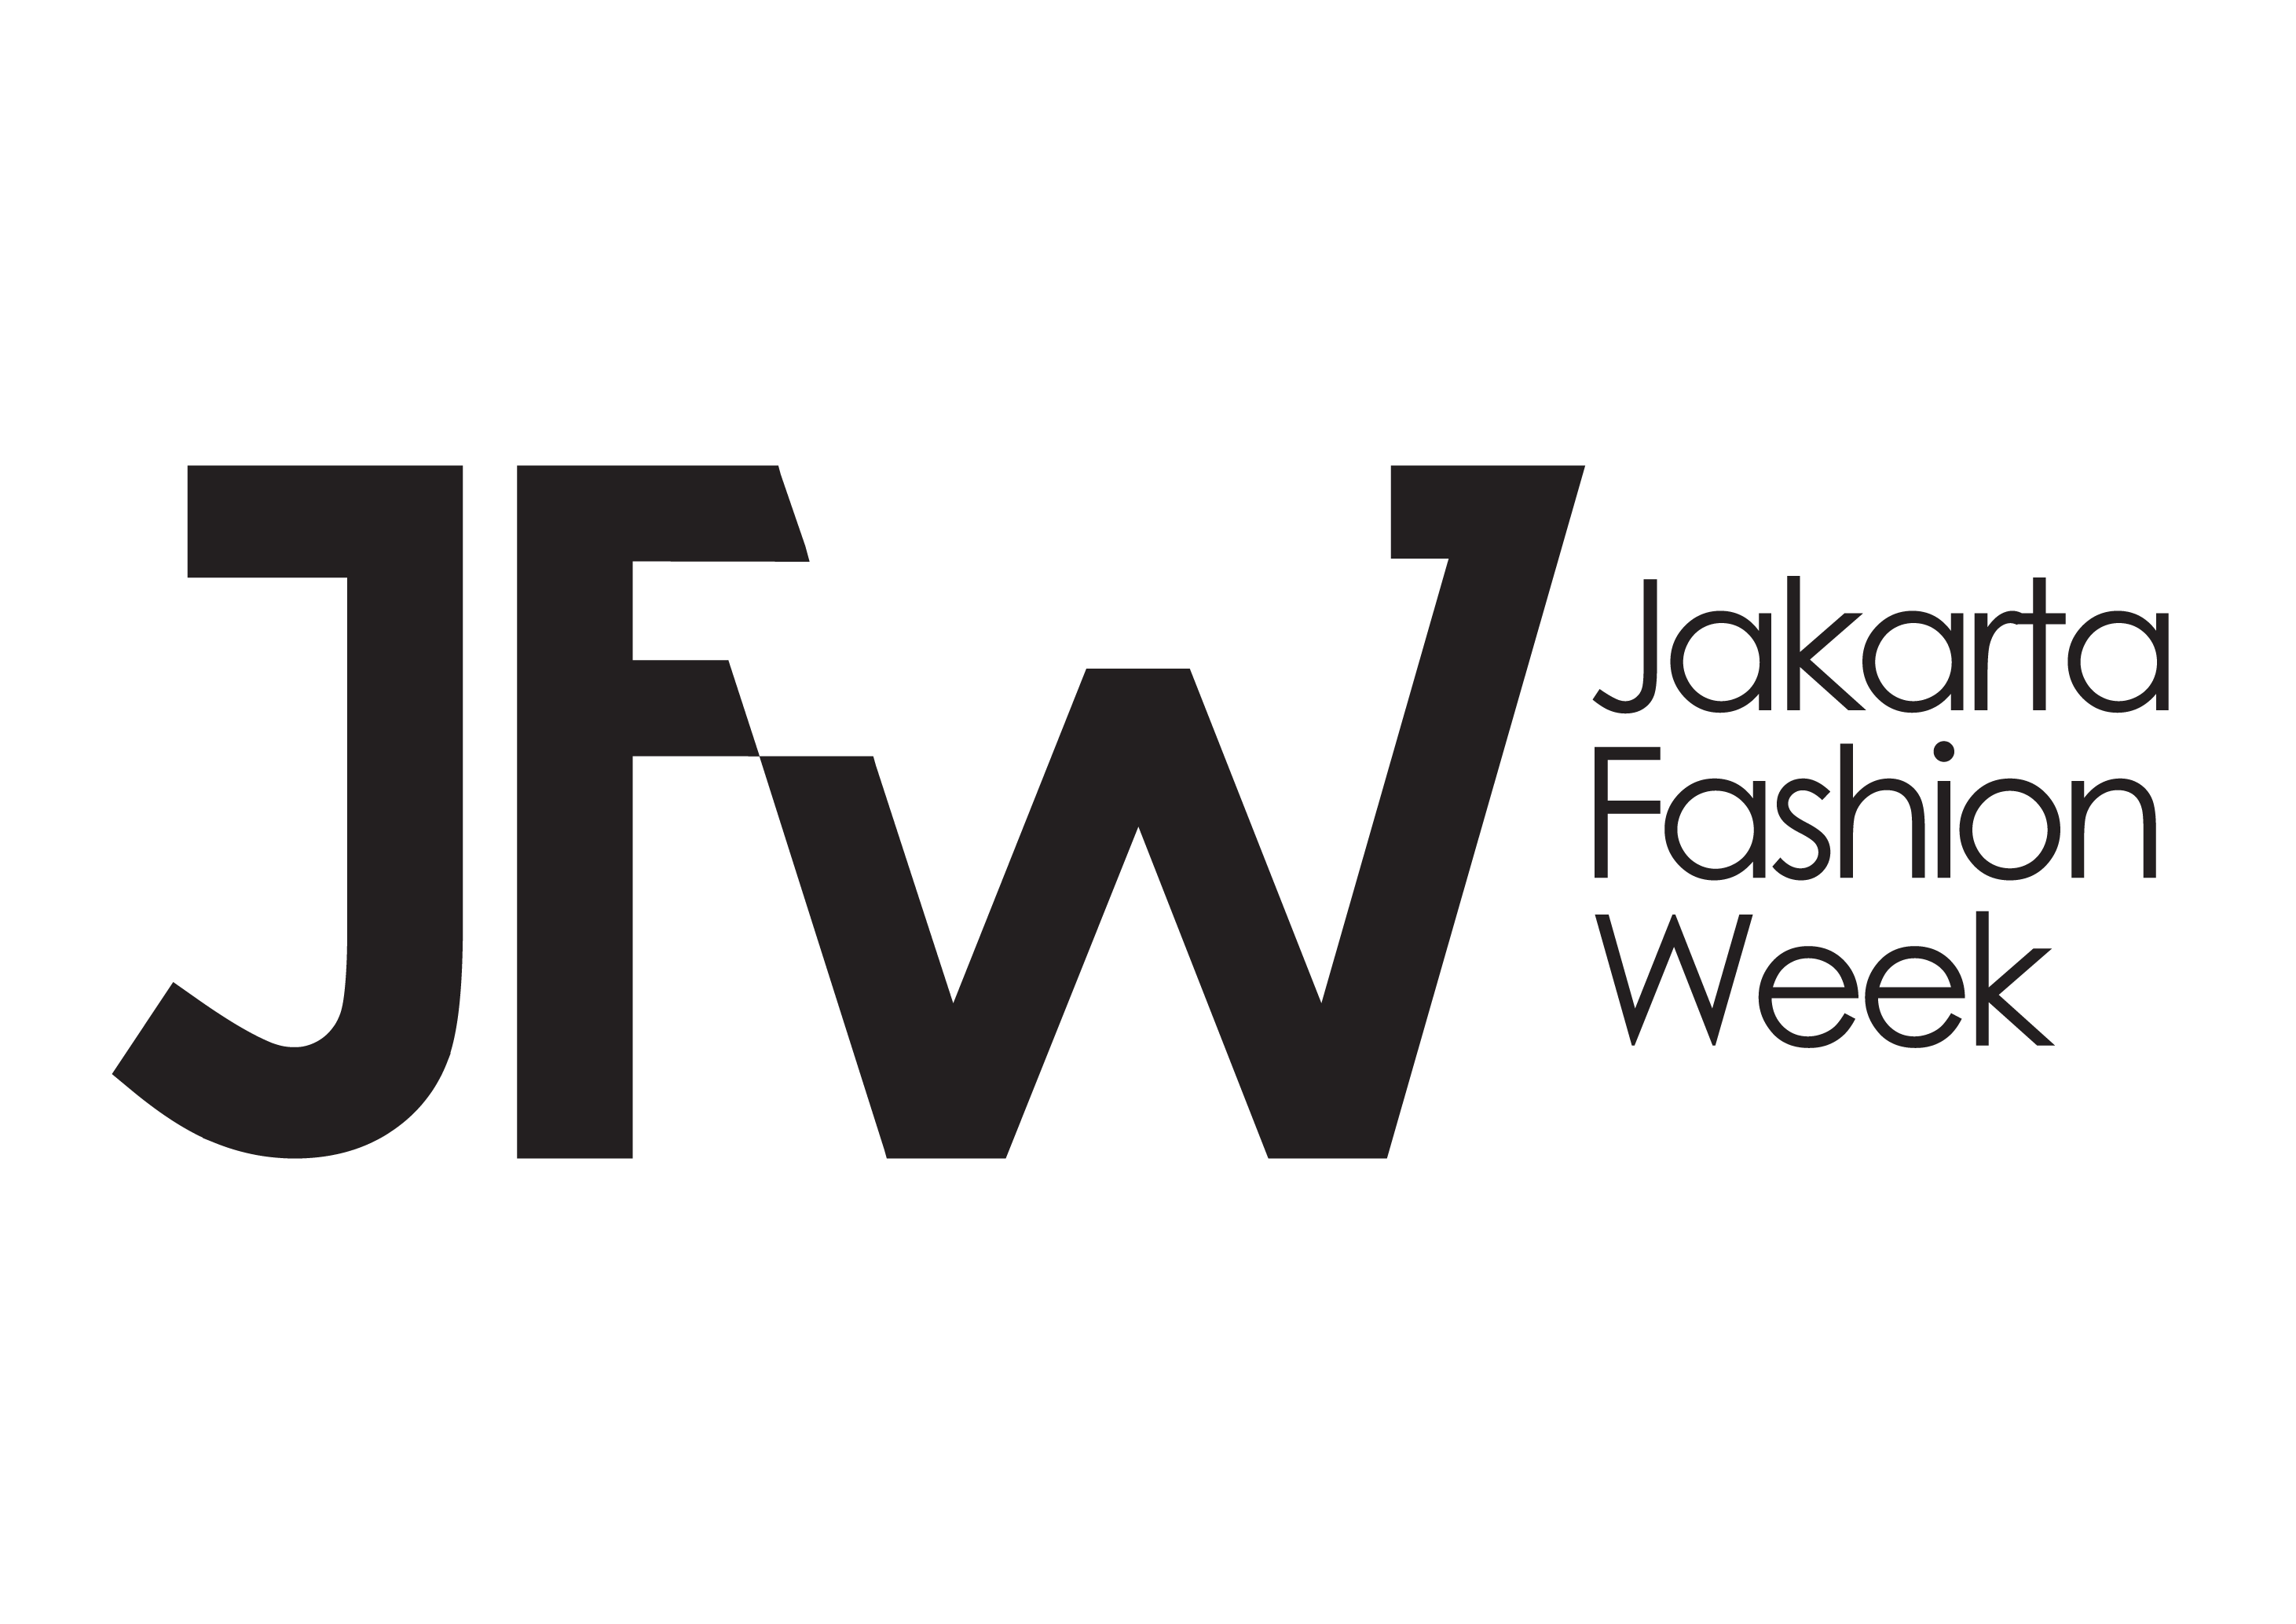 https://www.jakartafashionweek.co.id/